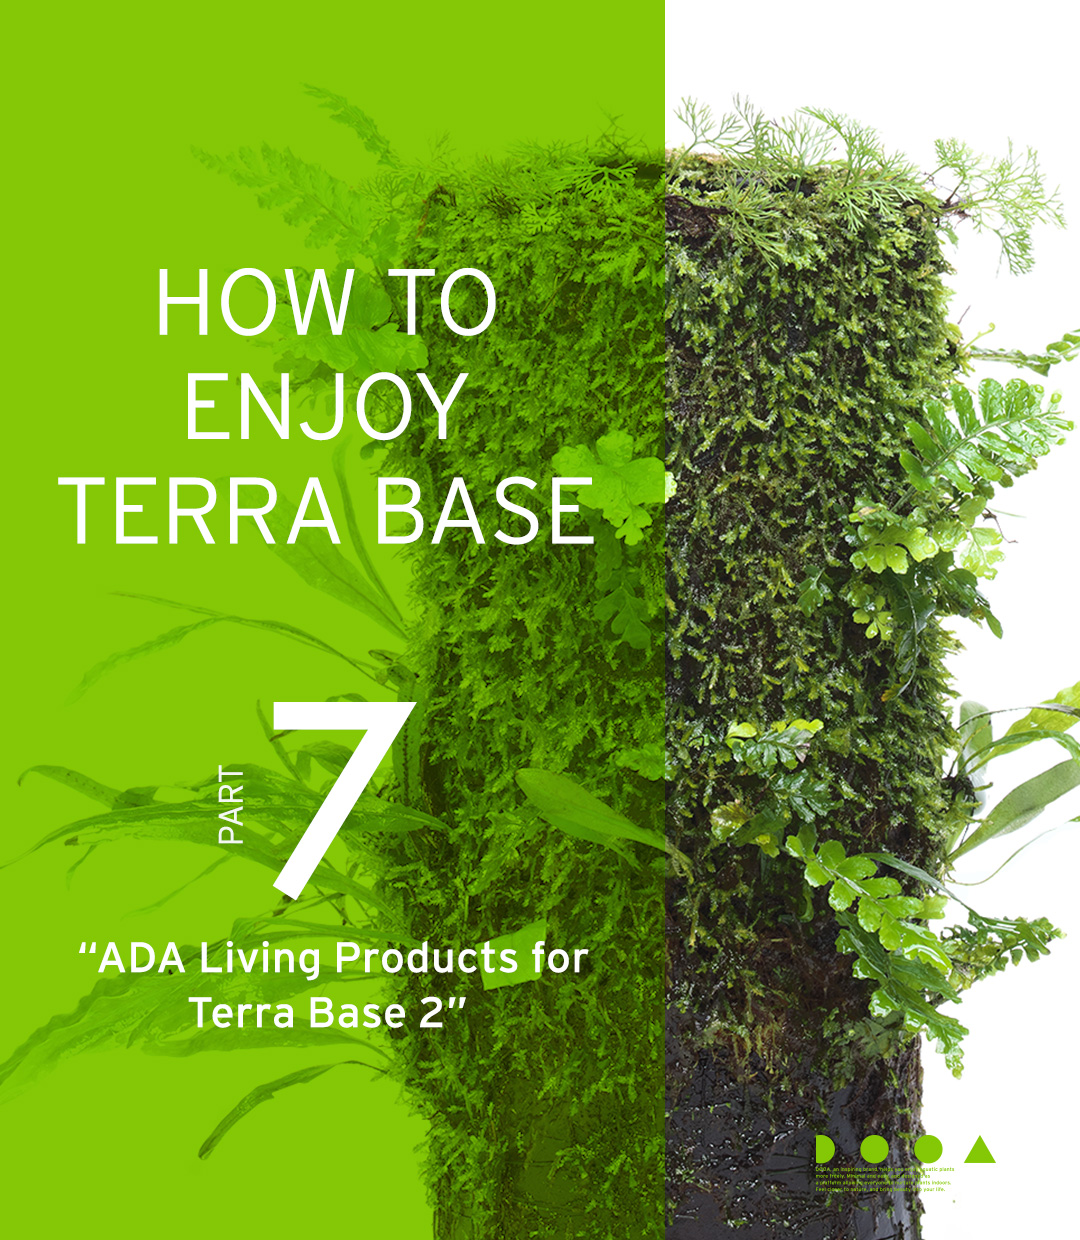 "HOW TO ENJOY TERRA BASE ""ADA Living Products for Terra Base Vol.2"